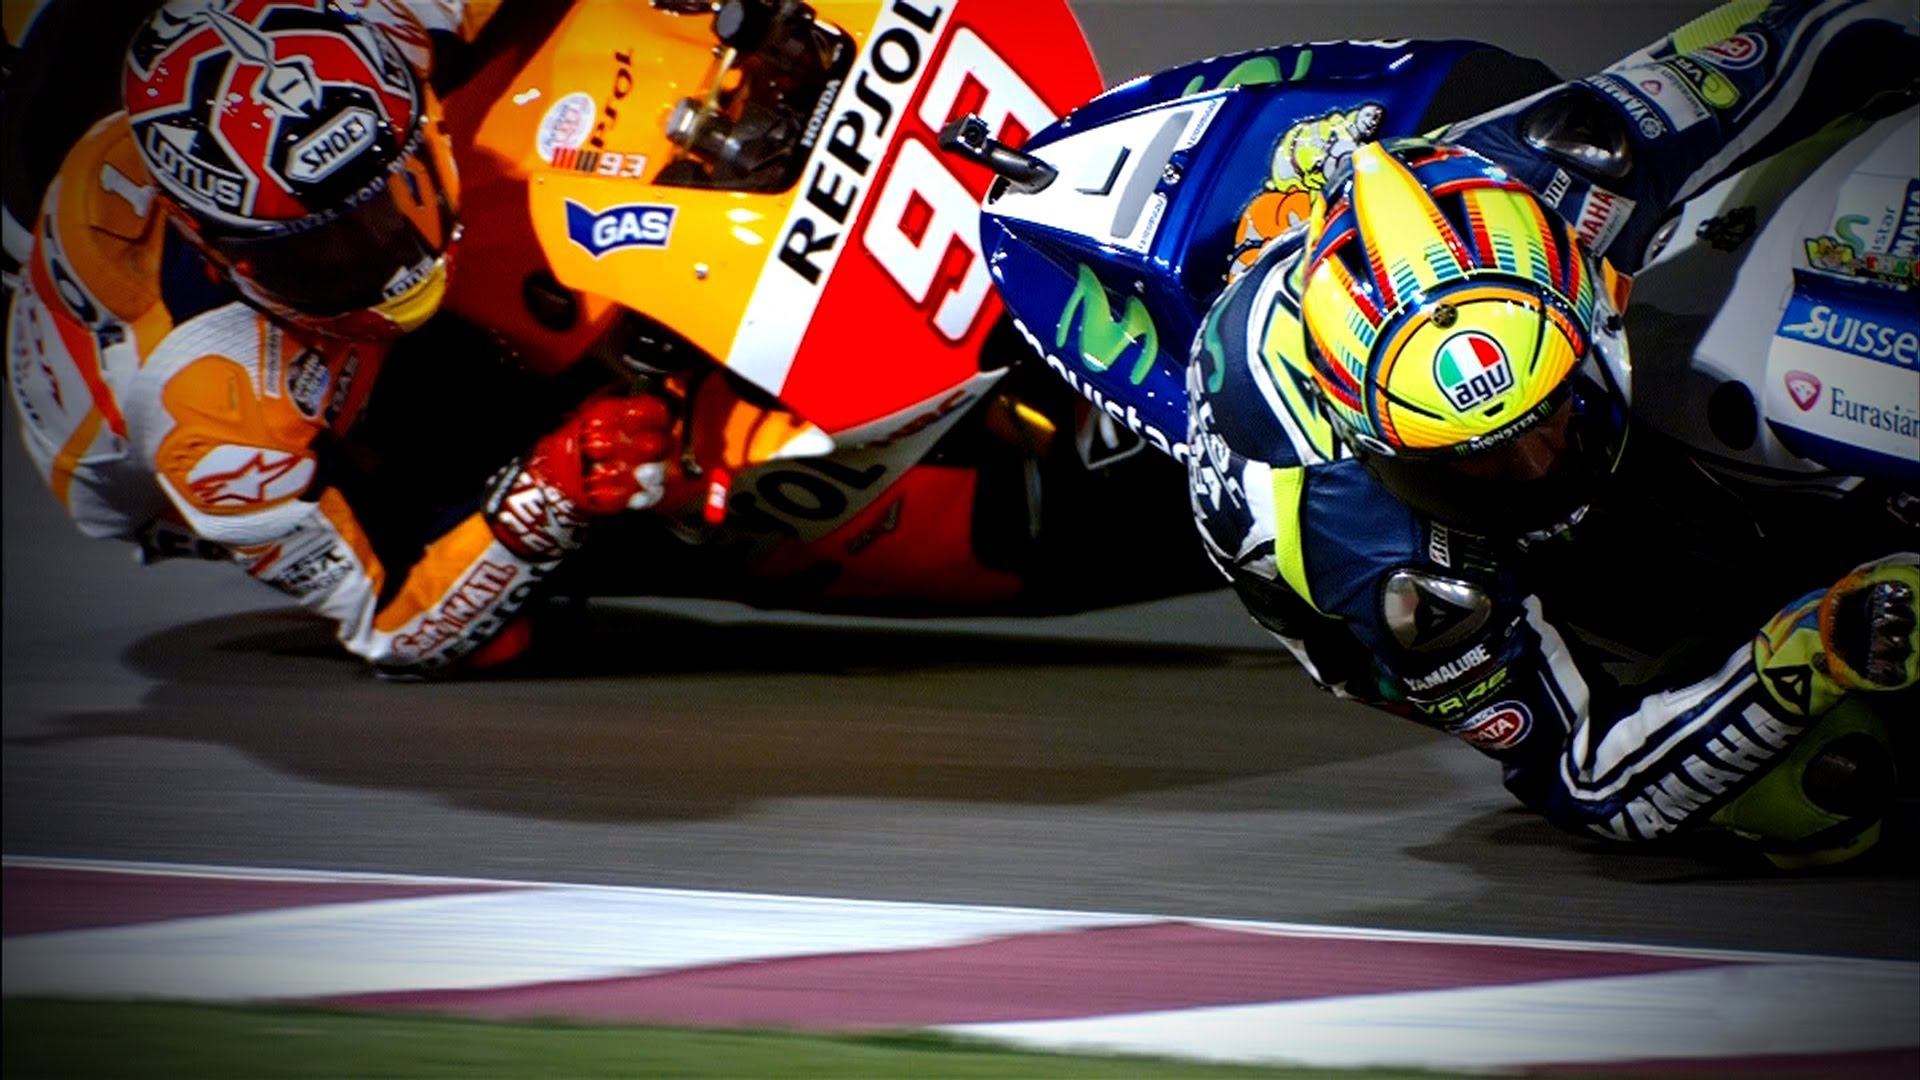 motogp-racing-wallpaper-background-hd-14